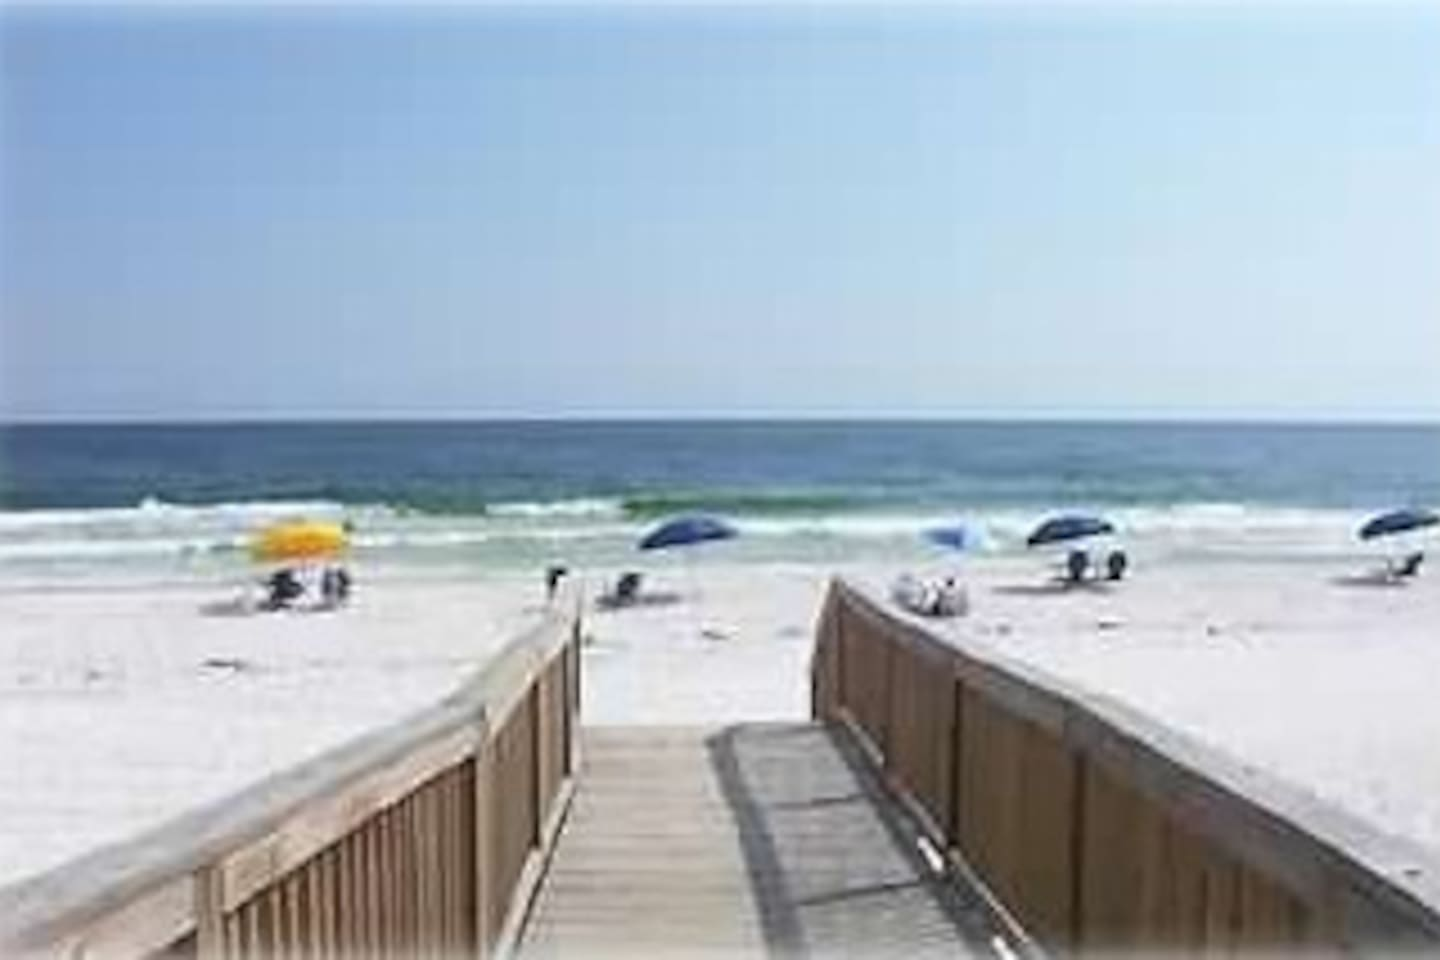 This beach is less than a two-minute walk from the condo! The walk is just down the stairs,around the pool, and down the sidewalk to the beach. There are no streets to cross.